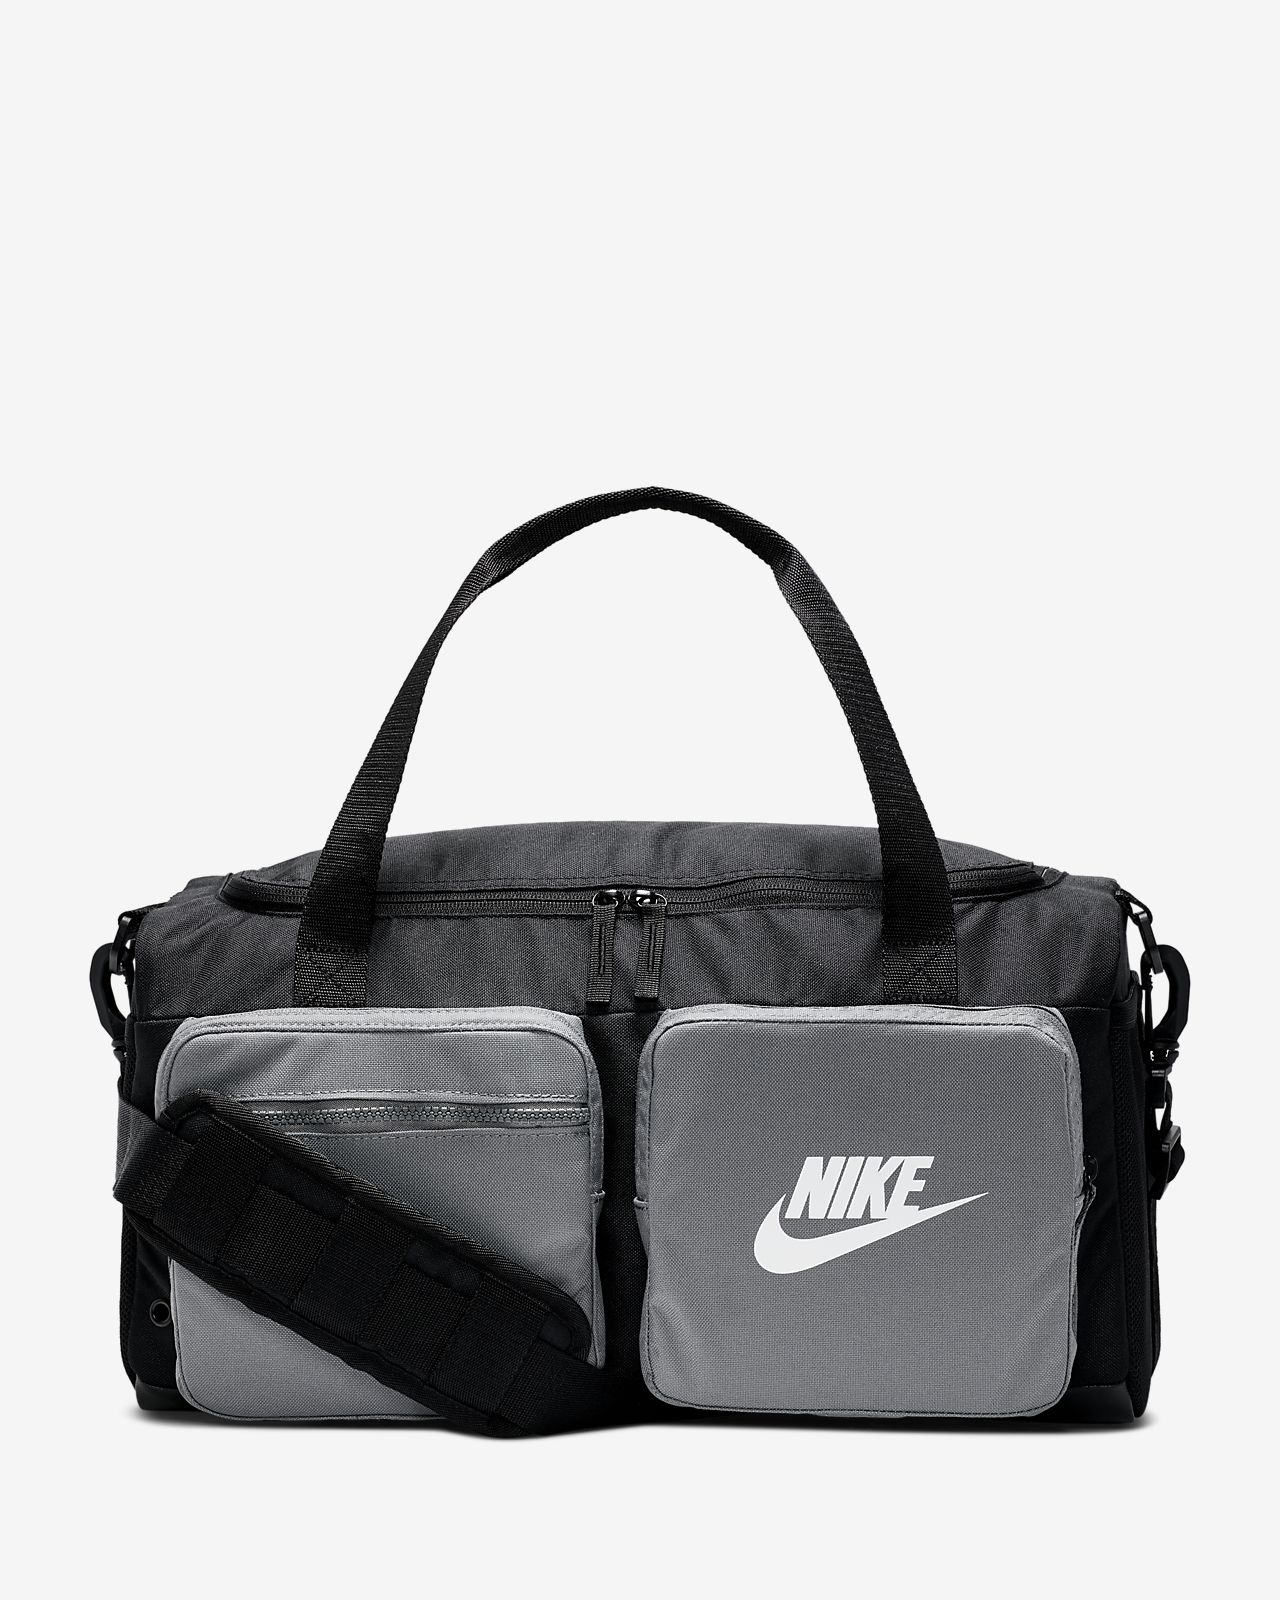 Details about Nike MAX Air Duffle Bag with Handle or Shoulder Strap BlackBlack(White)